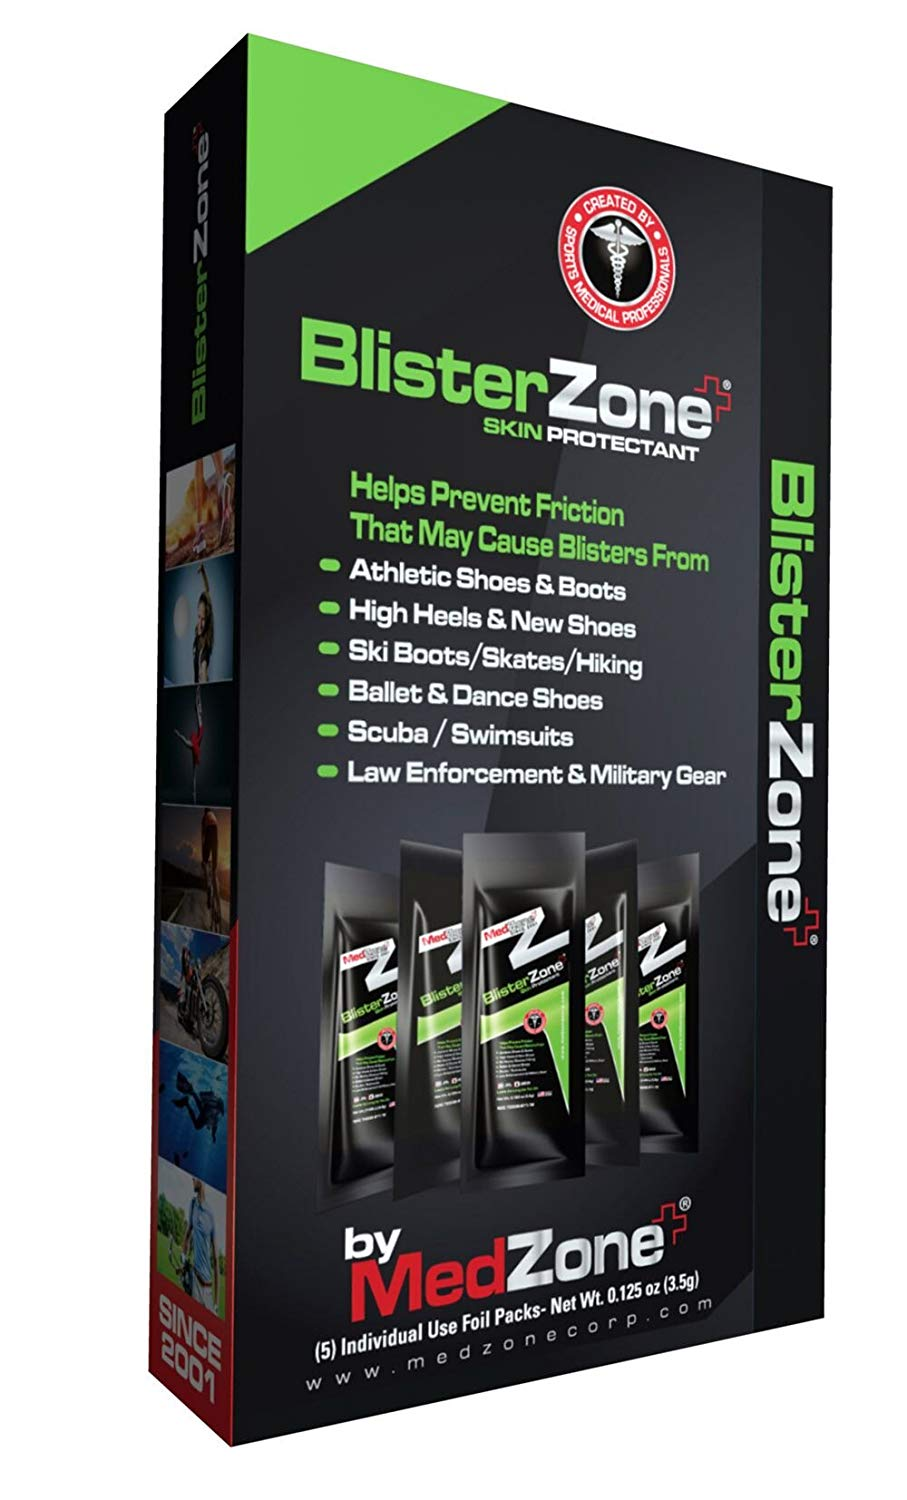 MedZone - BlisterZone Skin Protectant – Foot Blister Gel – Hand & Foot Blister Protectant - 1/8 oz (3.5gm) 5 Count Box - 2 Pack